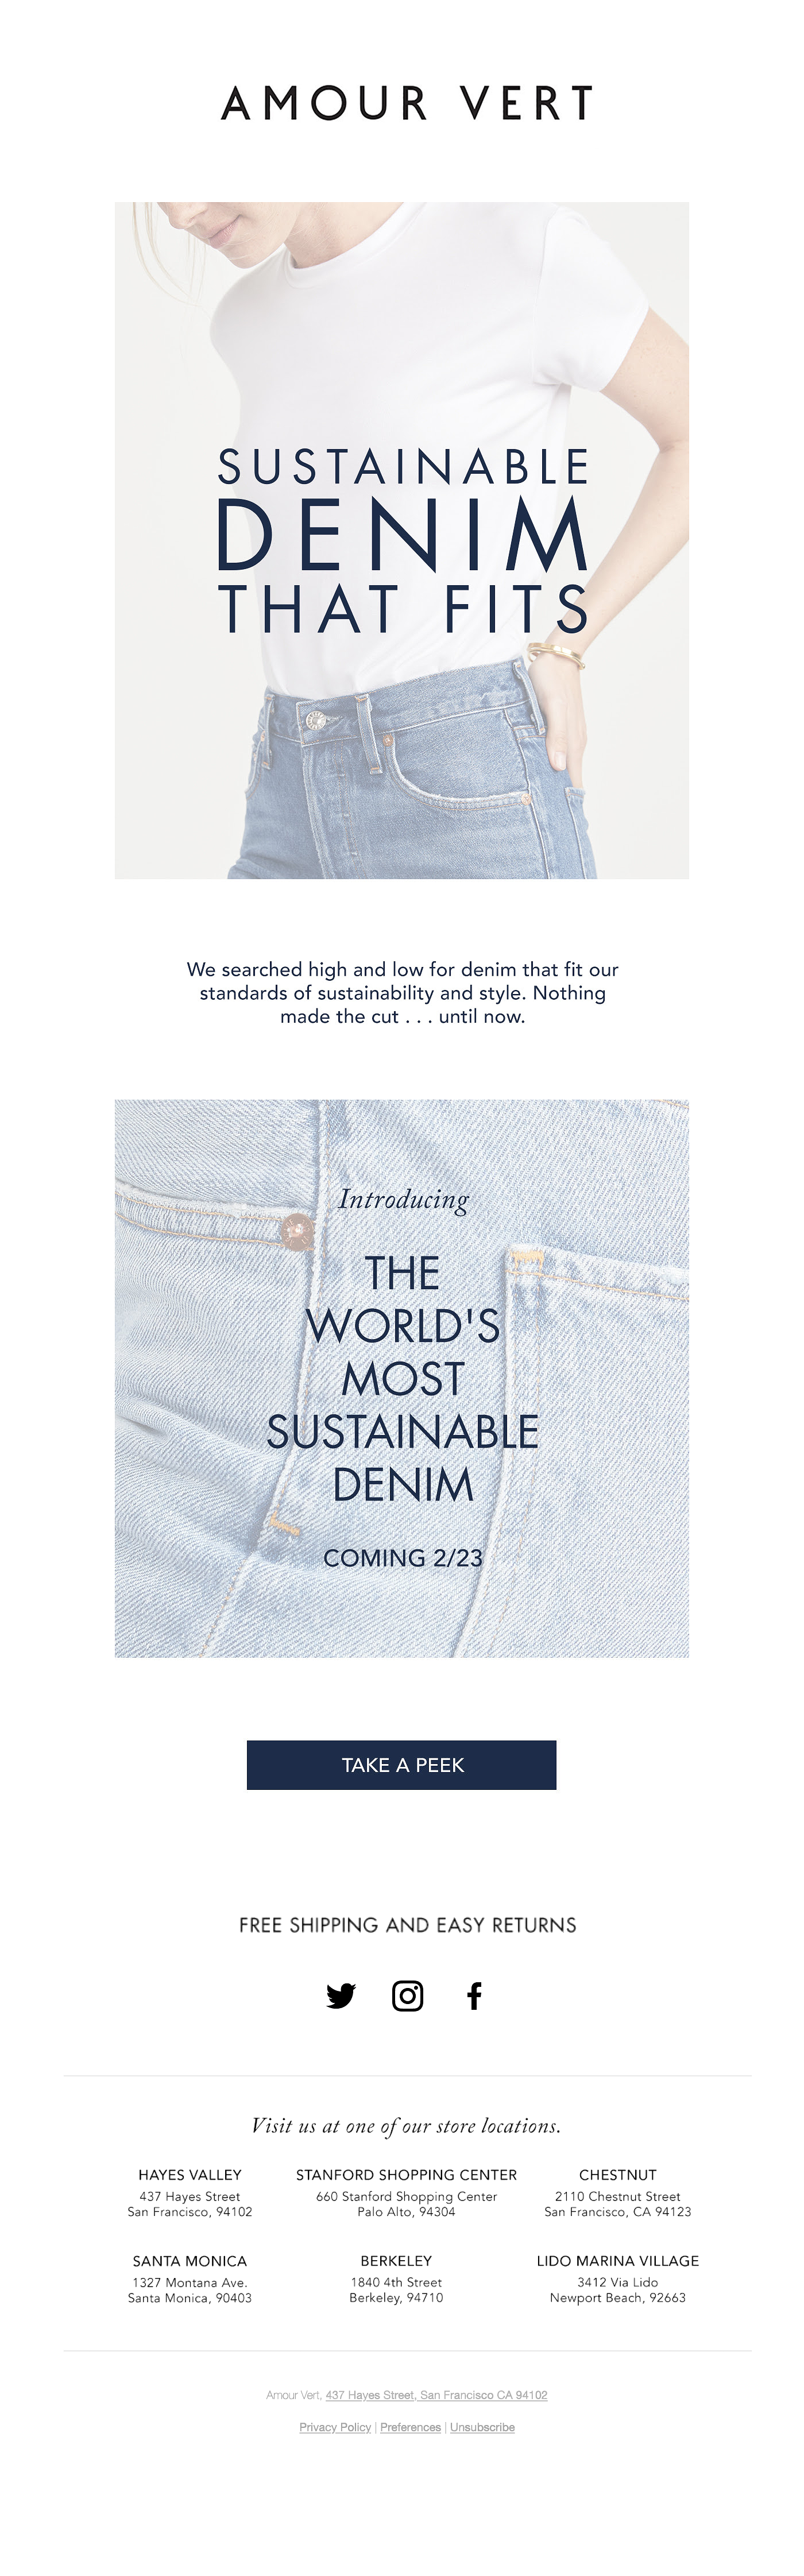 amourvertemail-coming-soon-denim-launch.png